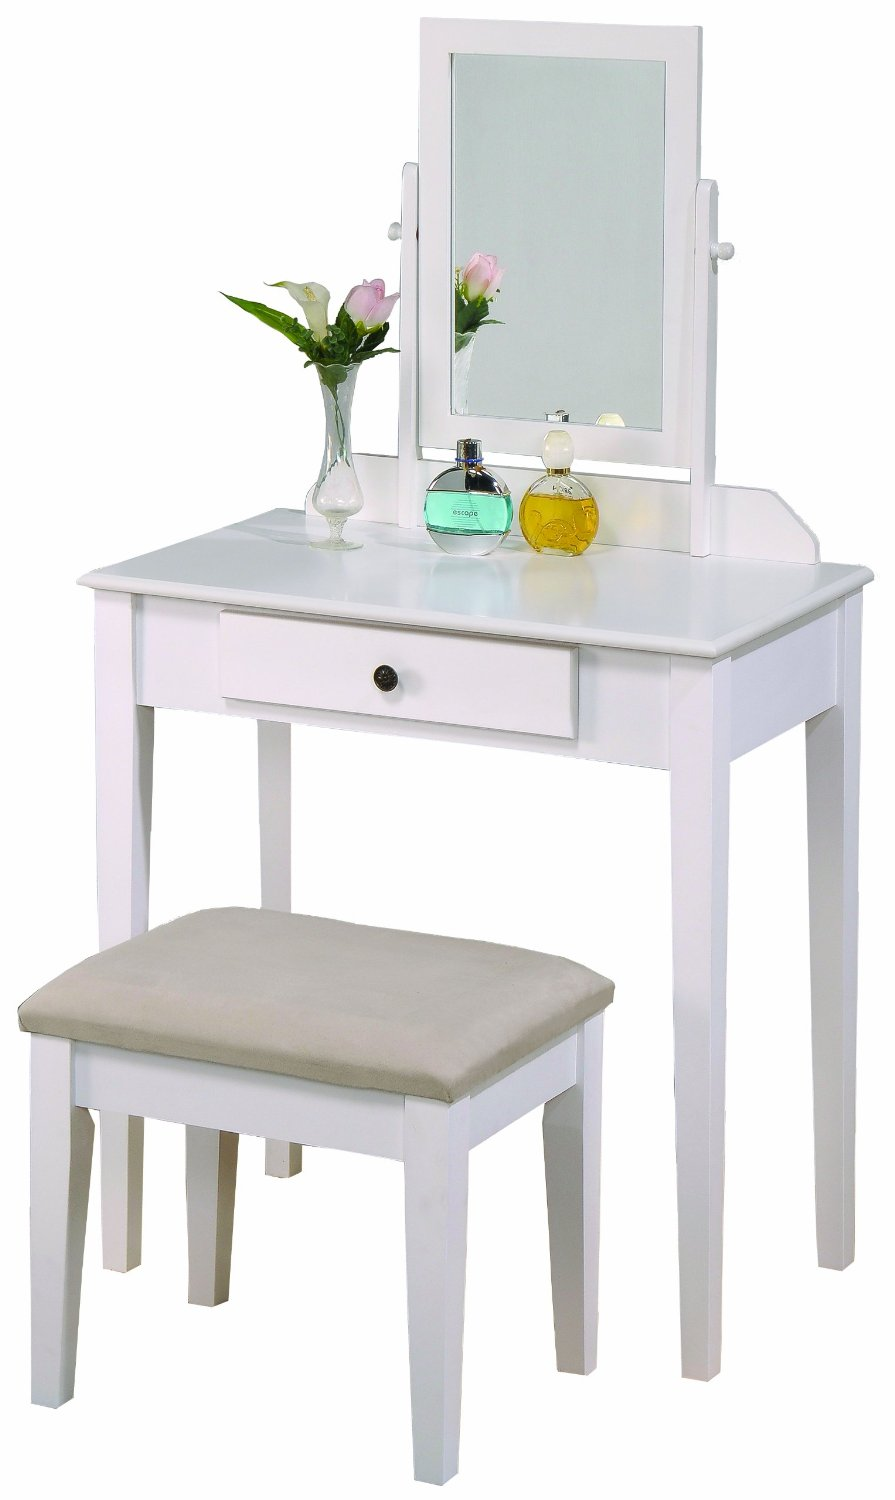 Mirrored Vanity Table And Stool: Sitting Pretty: Affordable Vanity Table Sets With Mirror